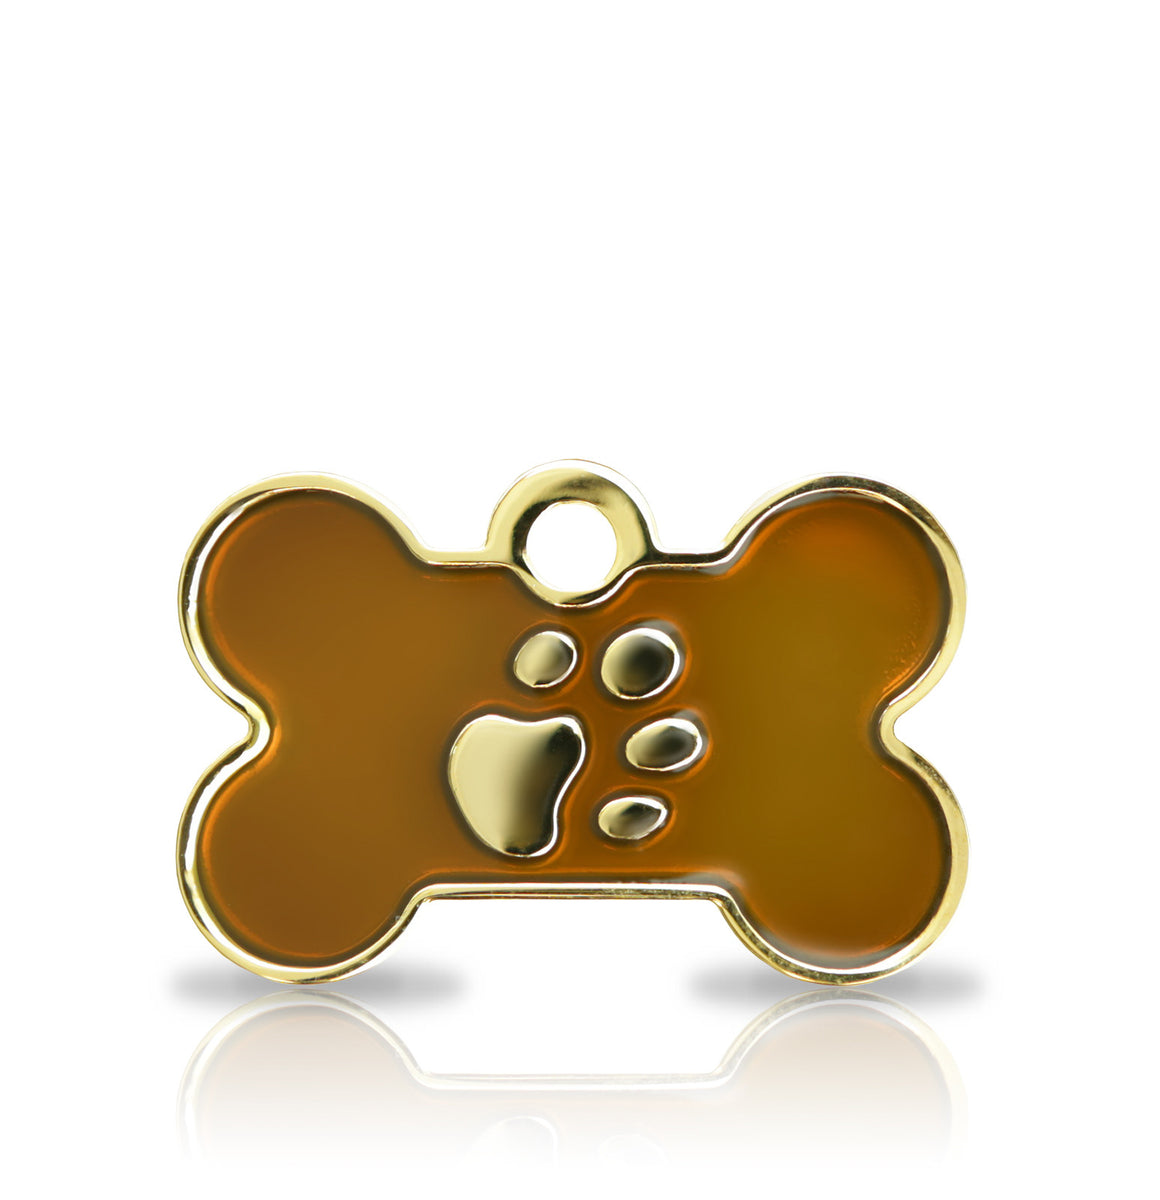 TaggIT Elegance Brown & Gold Small Bone Dog ID Tag